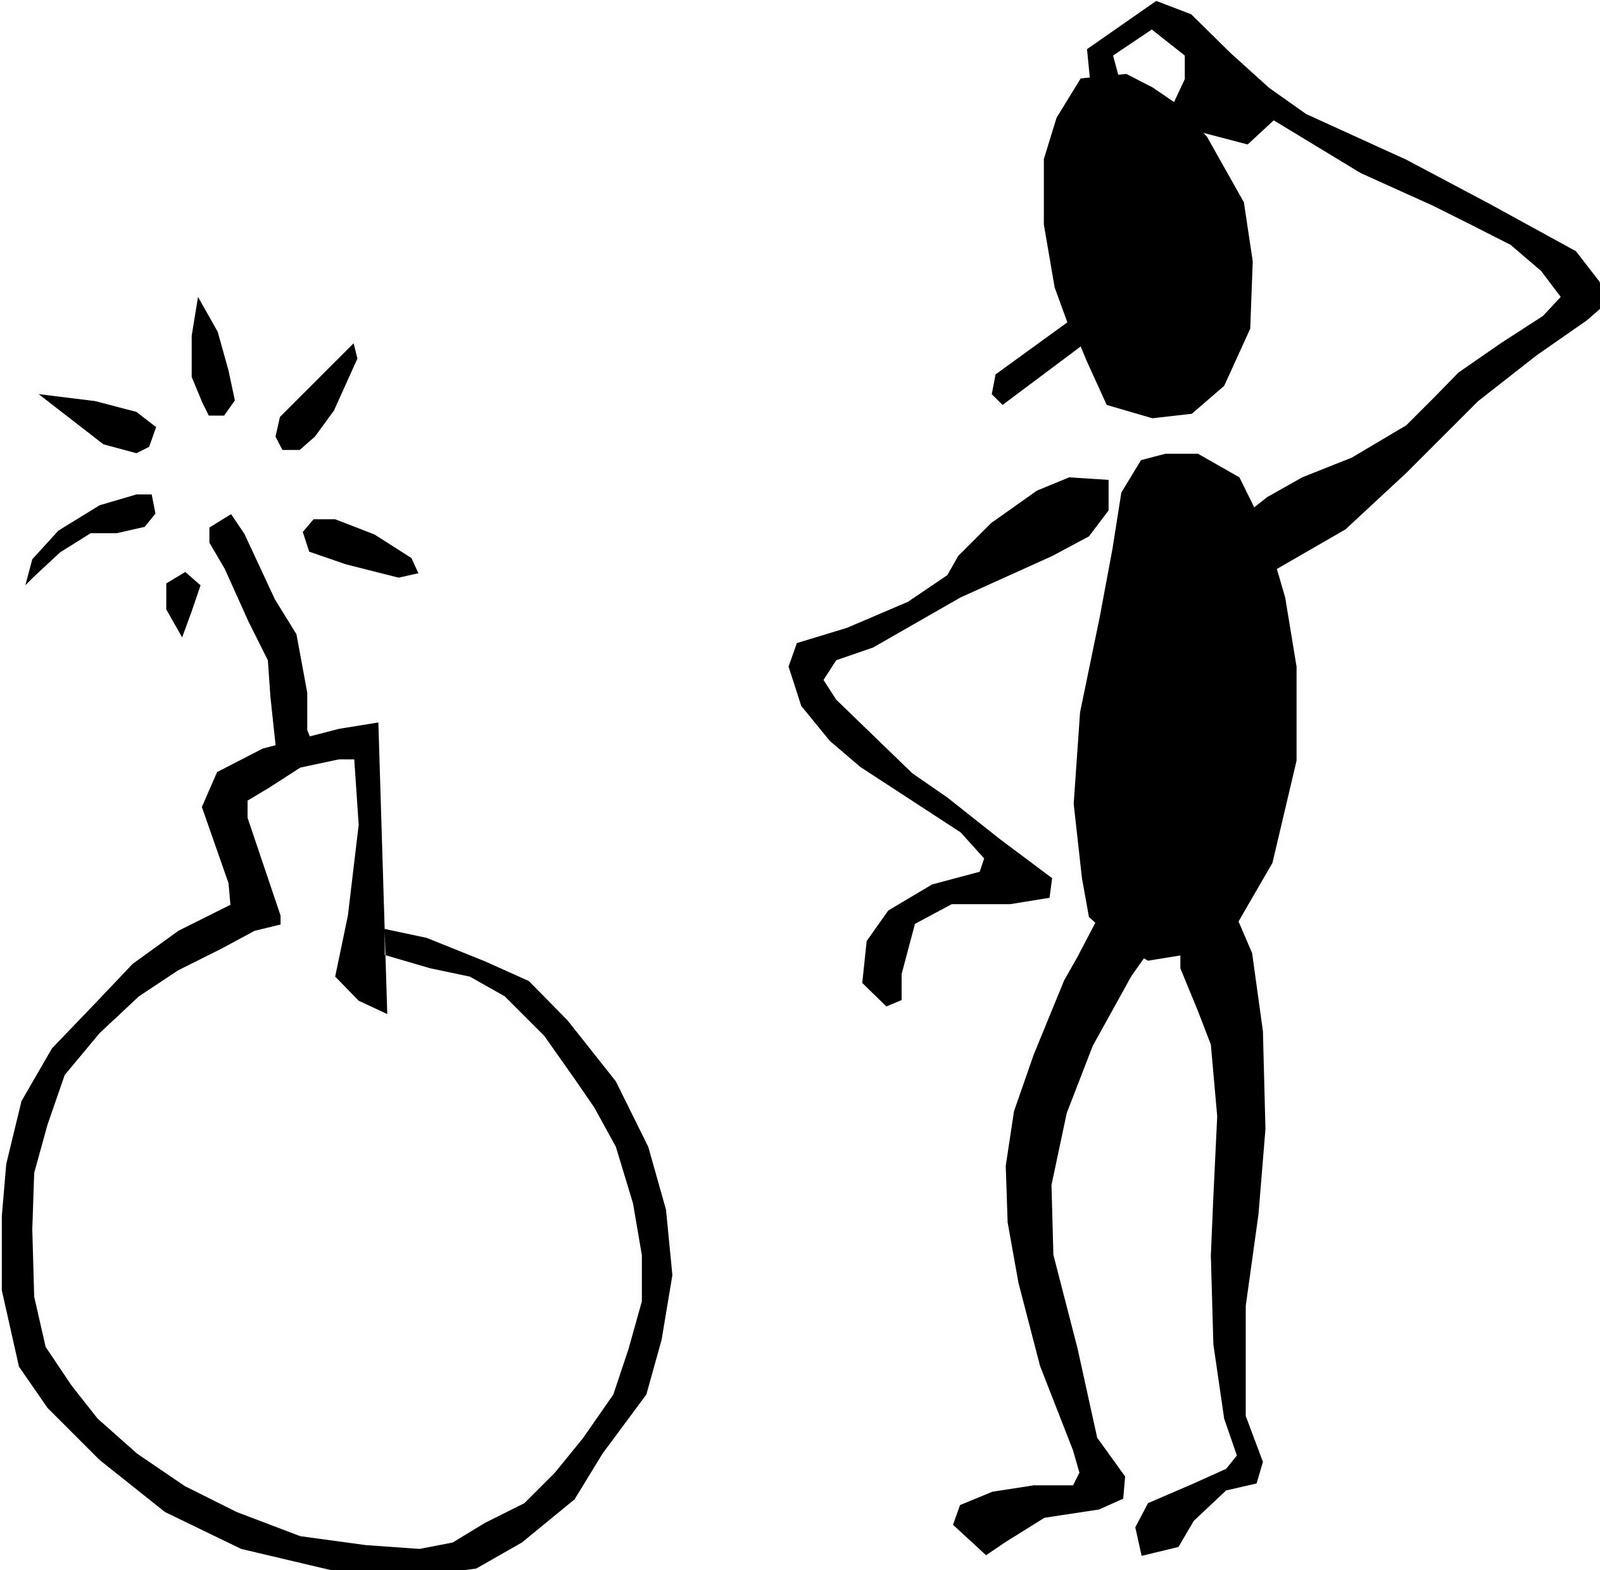 Free Confused Stick Figure Download Free Clip Art Free